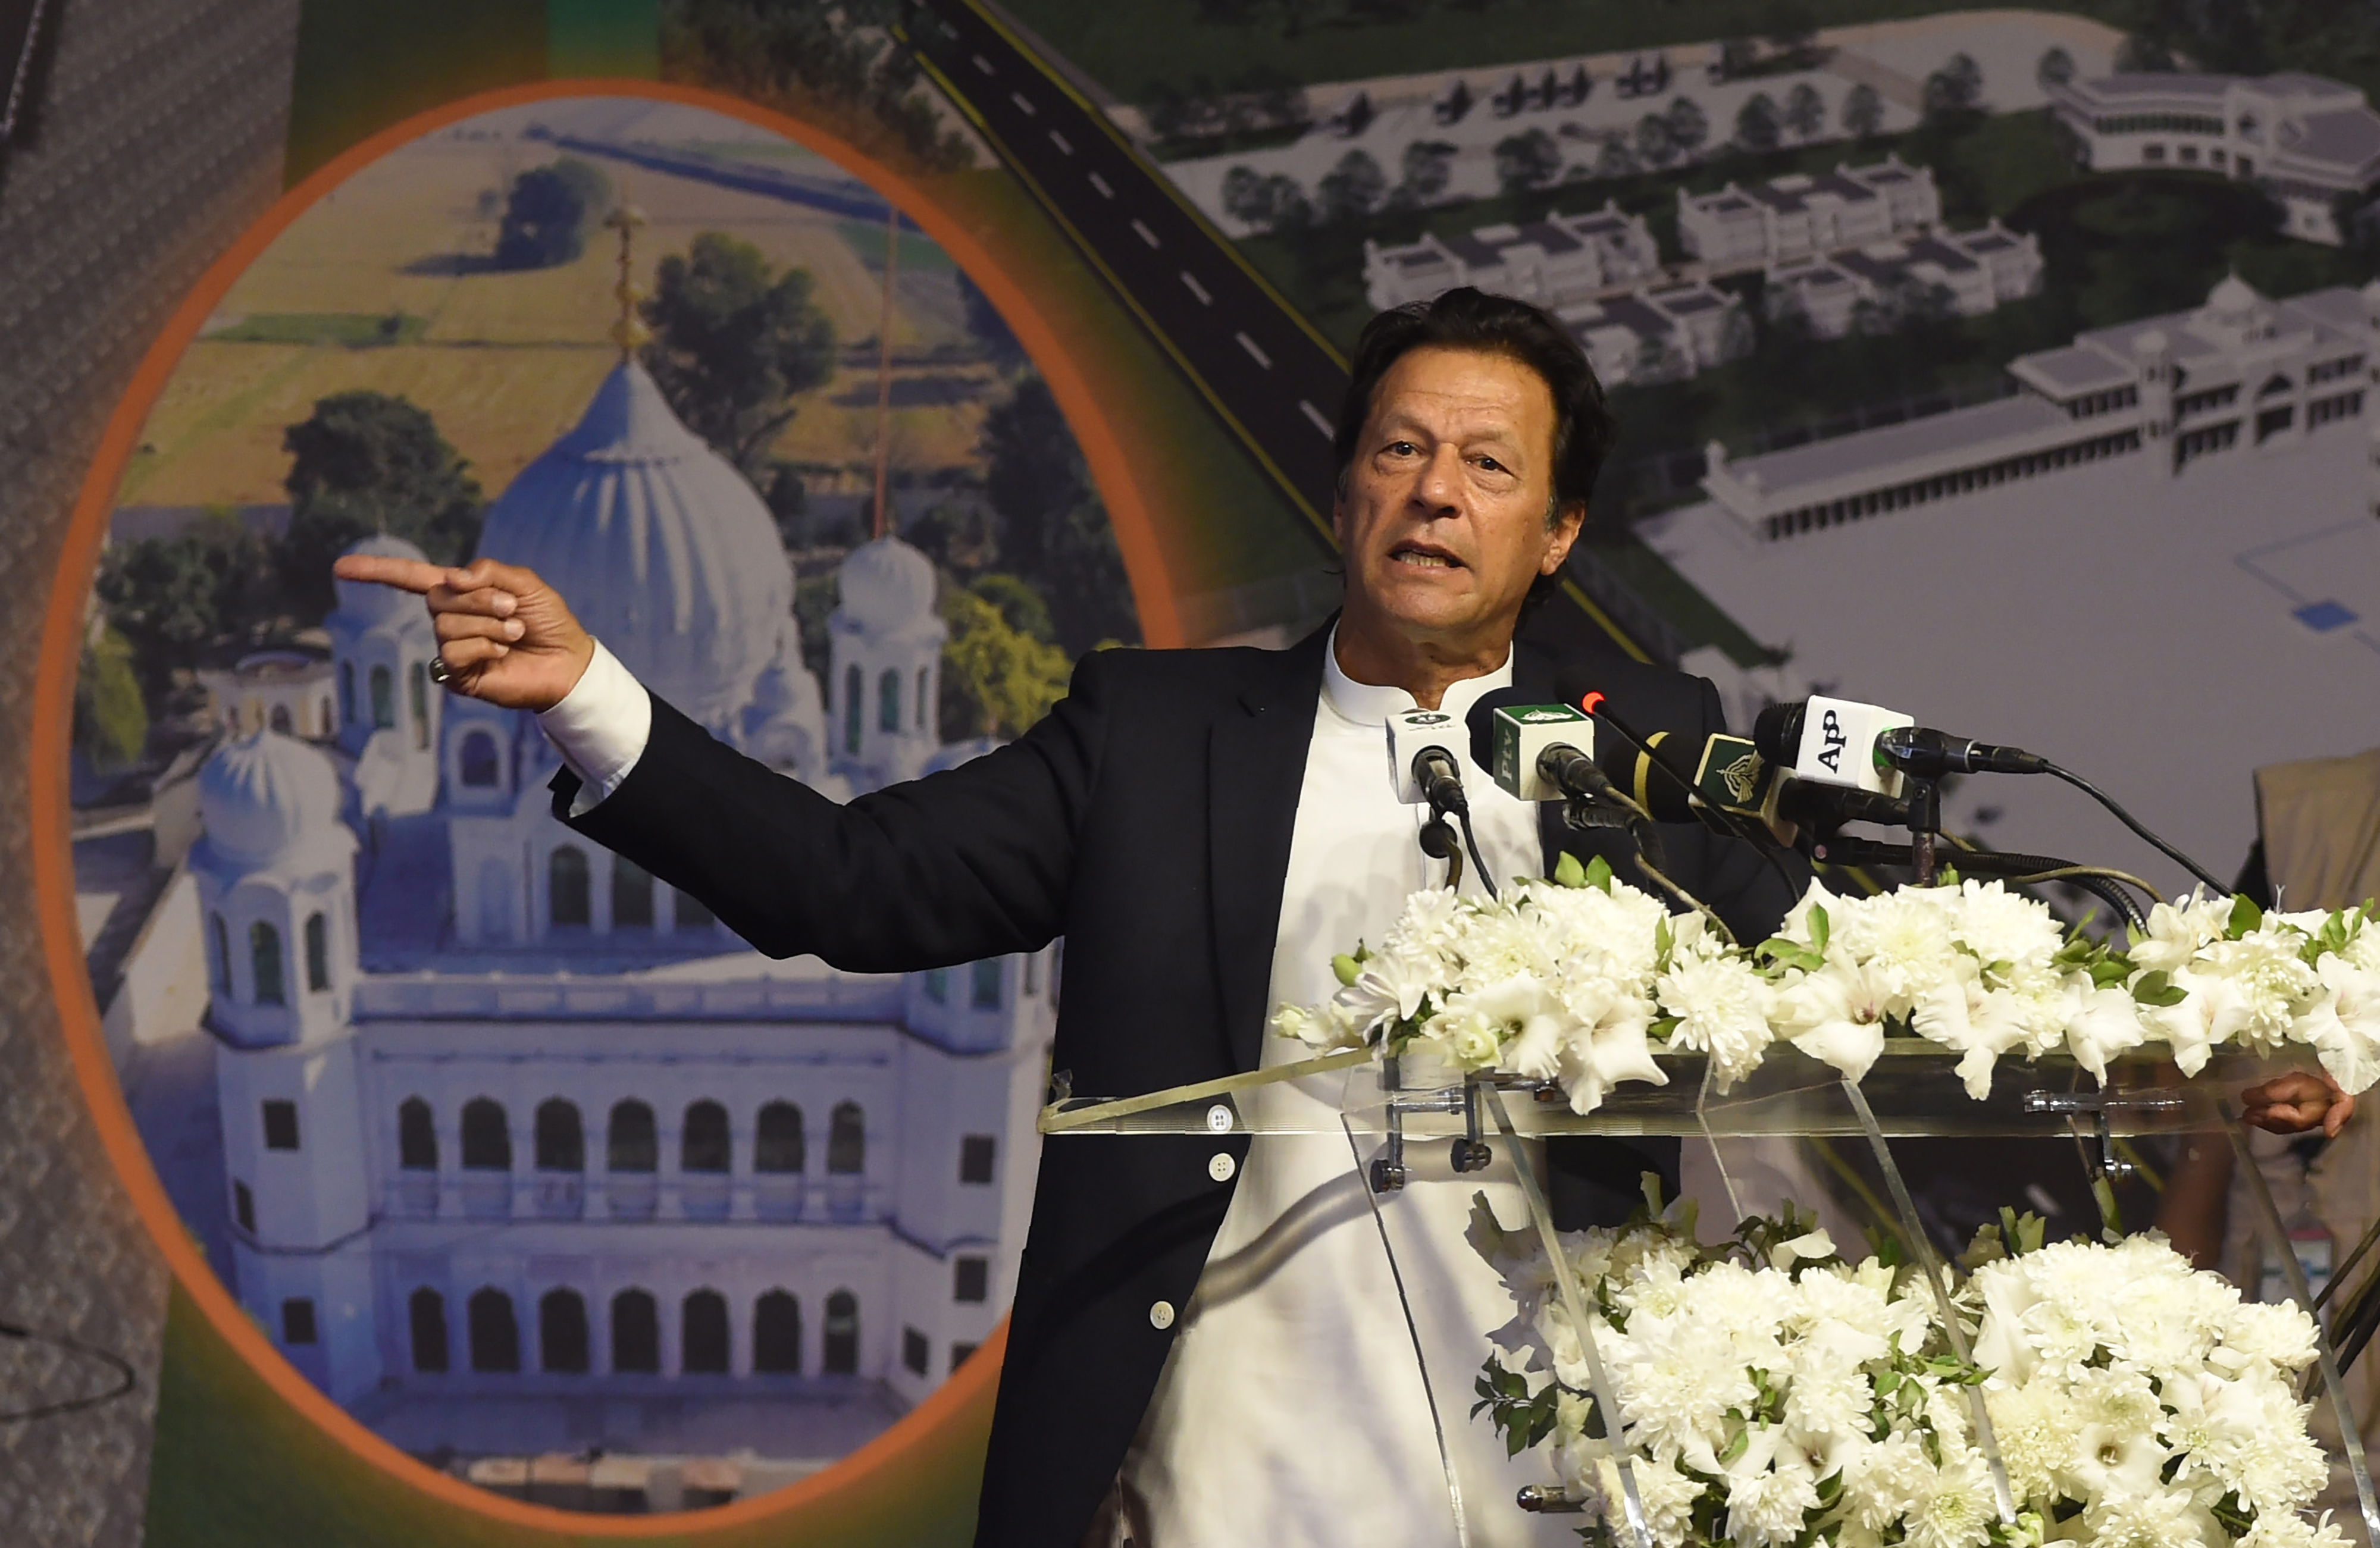 File photograph of Pakistan Prime Minister Imran Khan speaking at the groundbreaking ceremony for the Kartarpur Corridor, a religious corridor between India and Pakistan in November 2018.